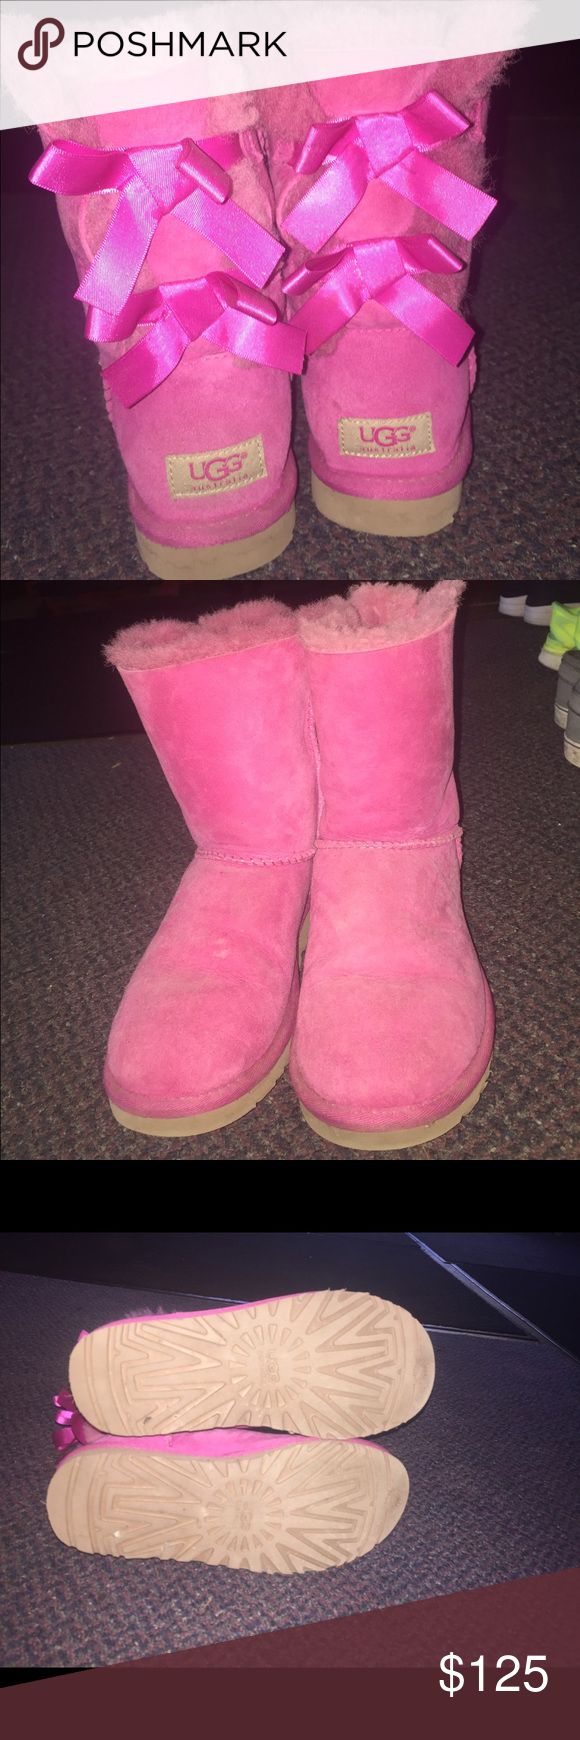 Excellent Condition Pink Bow Uggs Authentic and purchased from an ugg store. Only worn a handful of times. Selling because I want a more neutral color. Price is firm. No PayPal or other apps. No trades UGG Shoes Ankle Boots & Booties